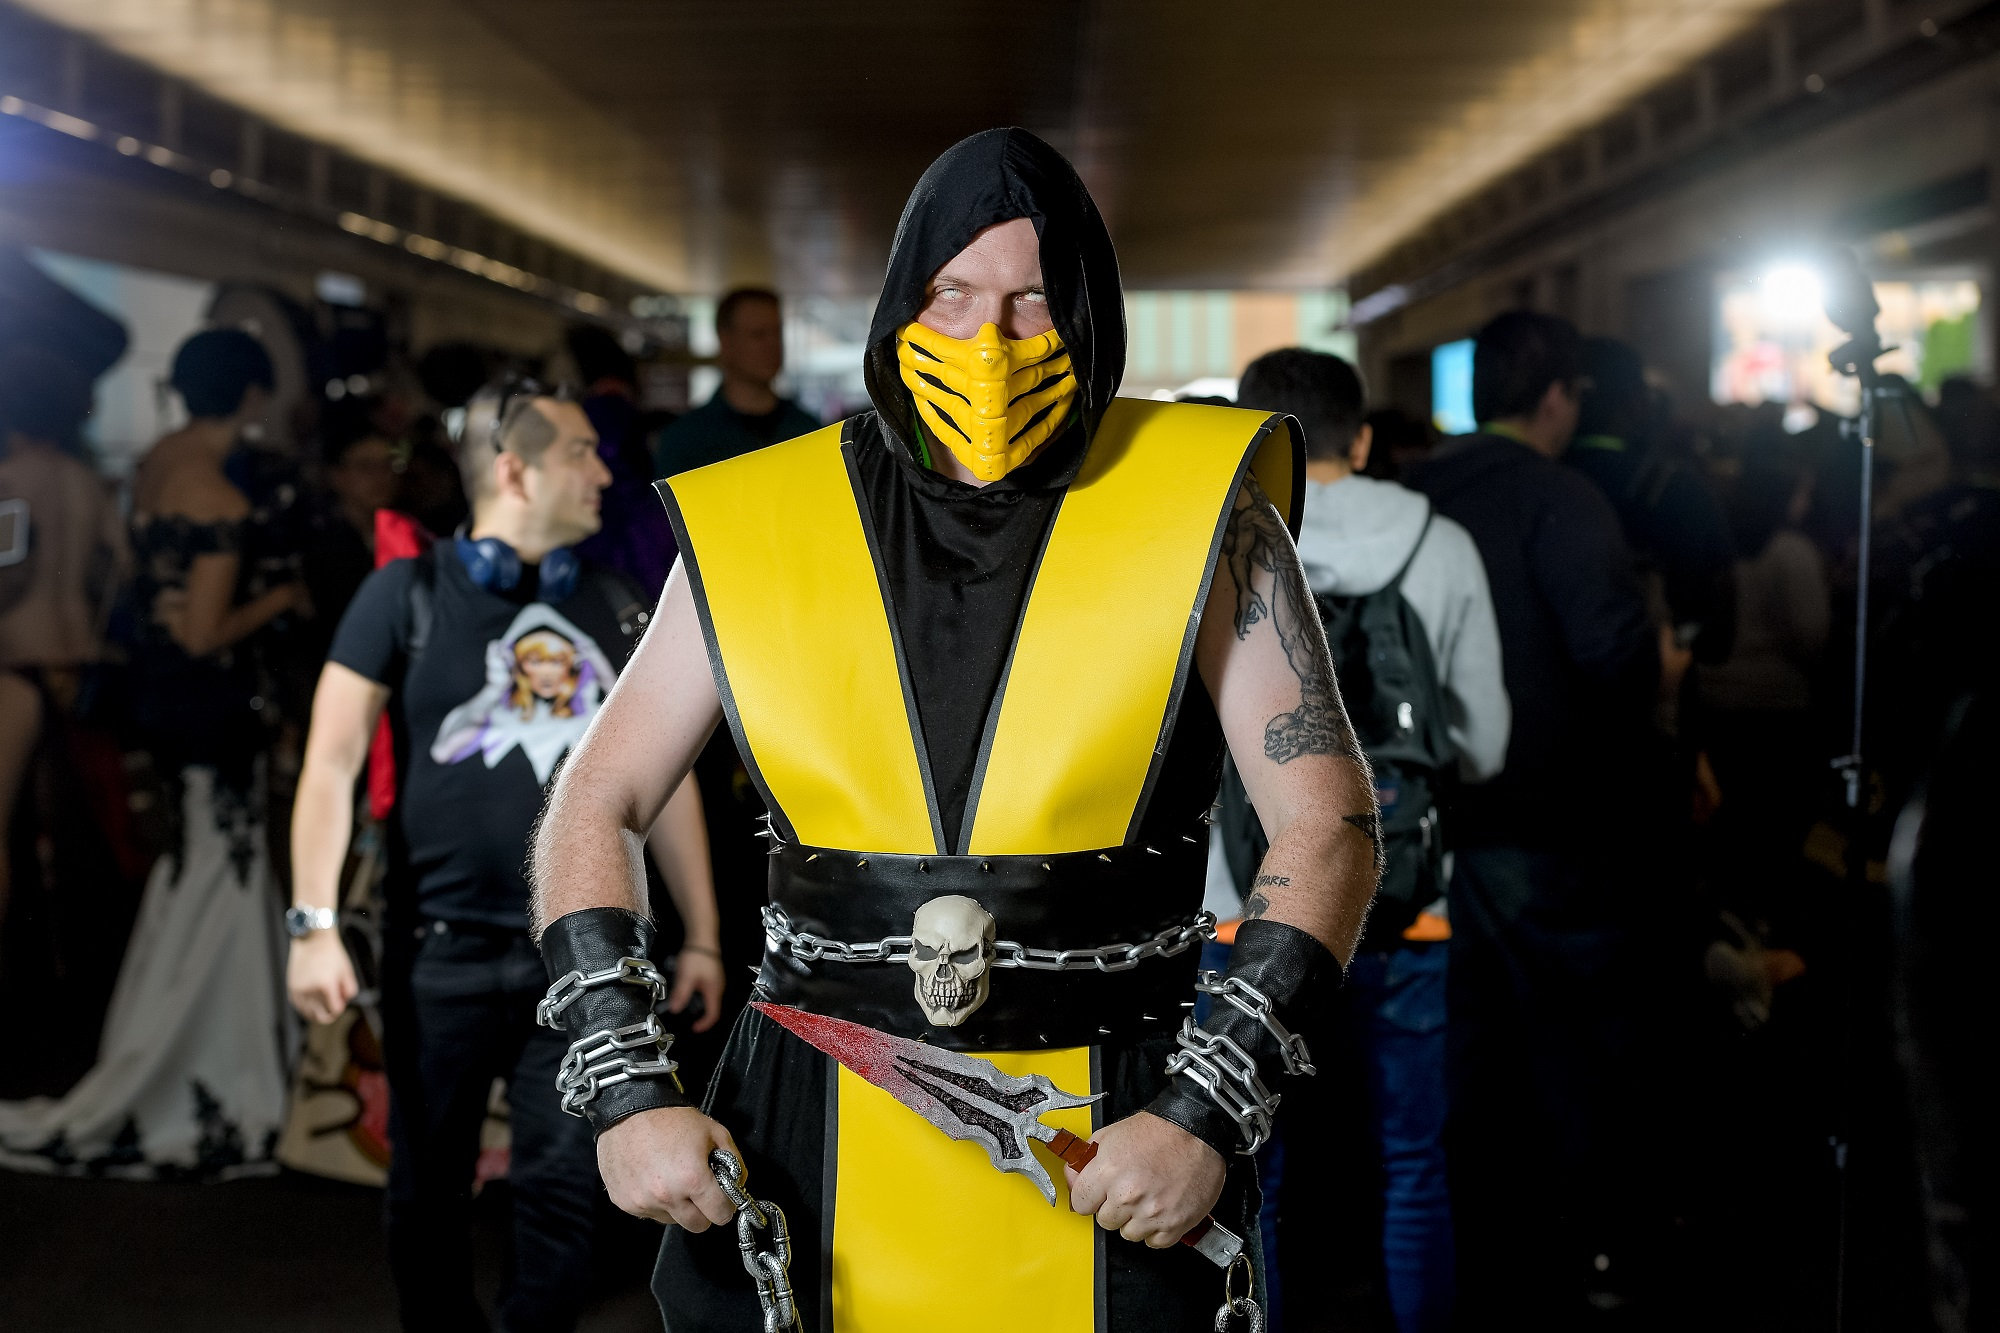 A fan cosplays as Scorpion from Mortal Kombat during the 2018 New York Comic Con